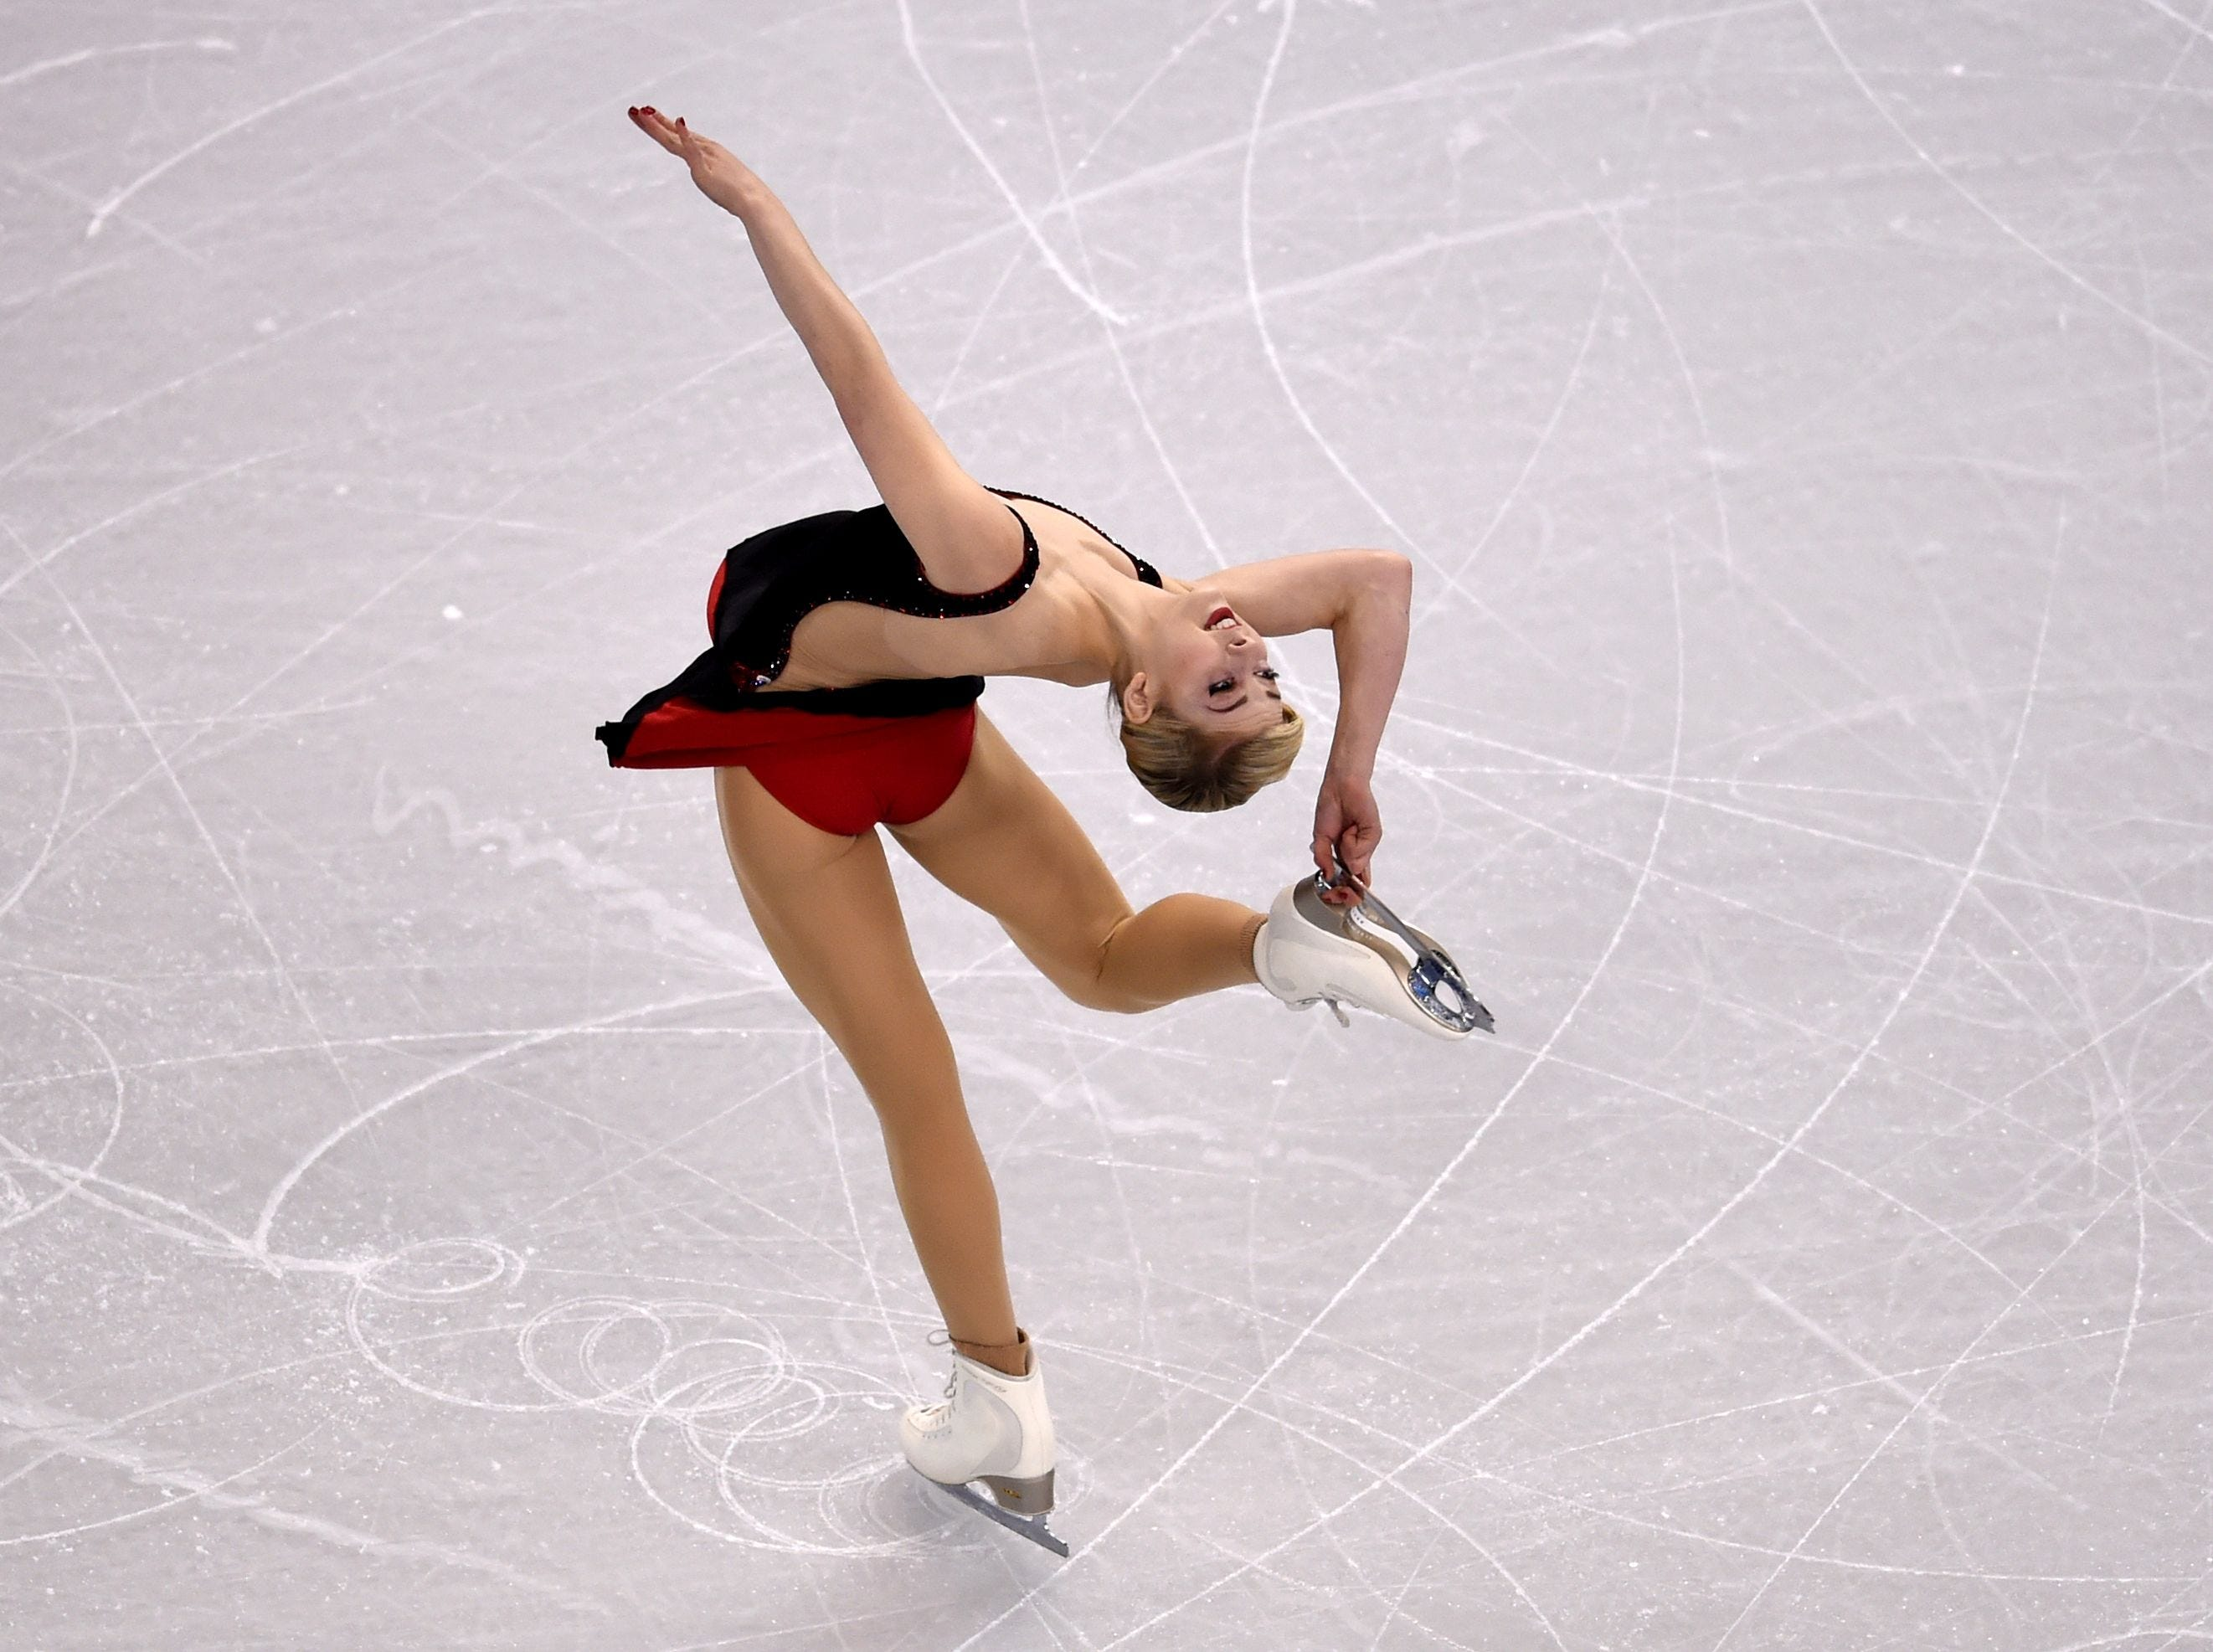 In 2016, Gracie Gold led after the short program but finished fourth at the ISU World Figure Skating Championships at TD Garden in Boston.